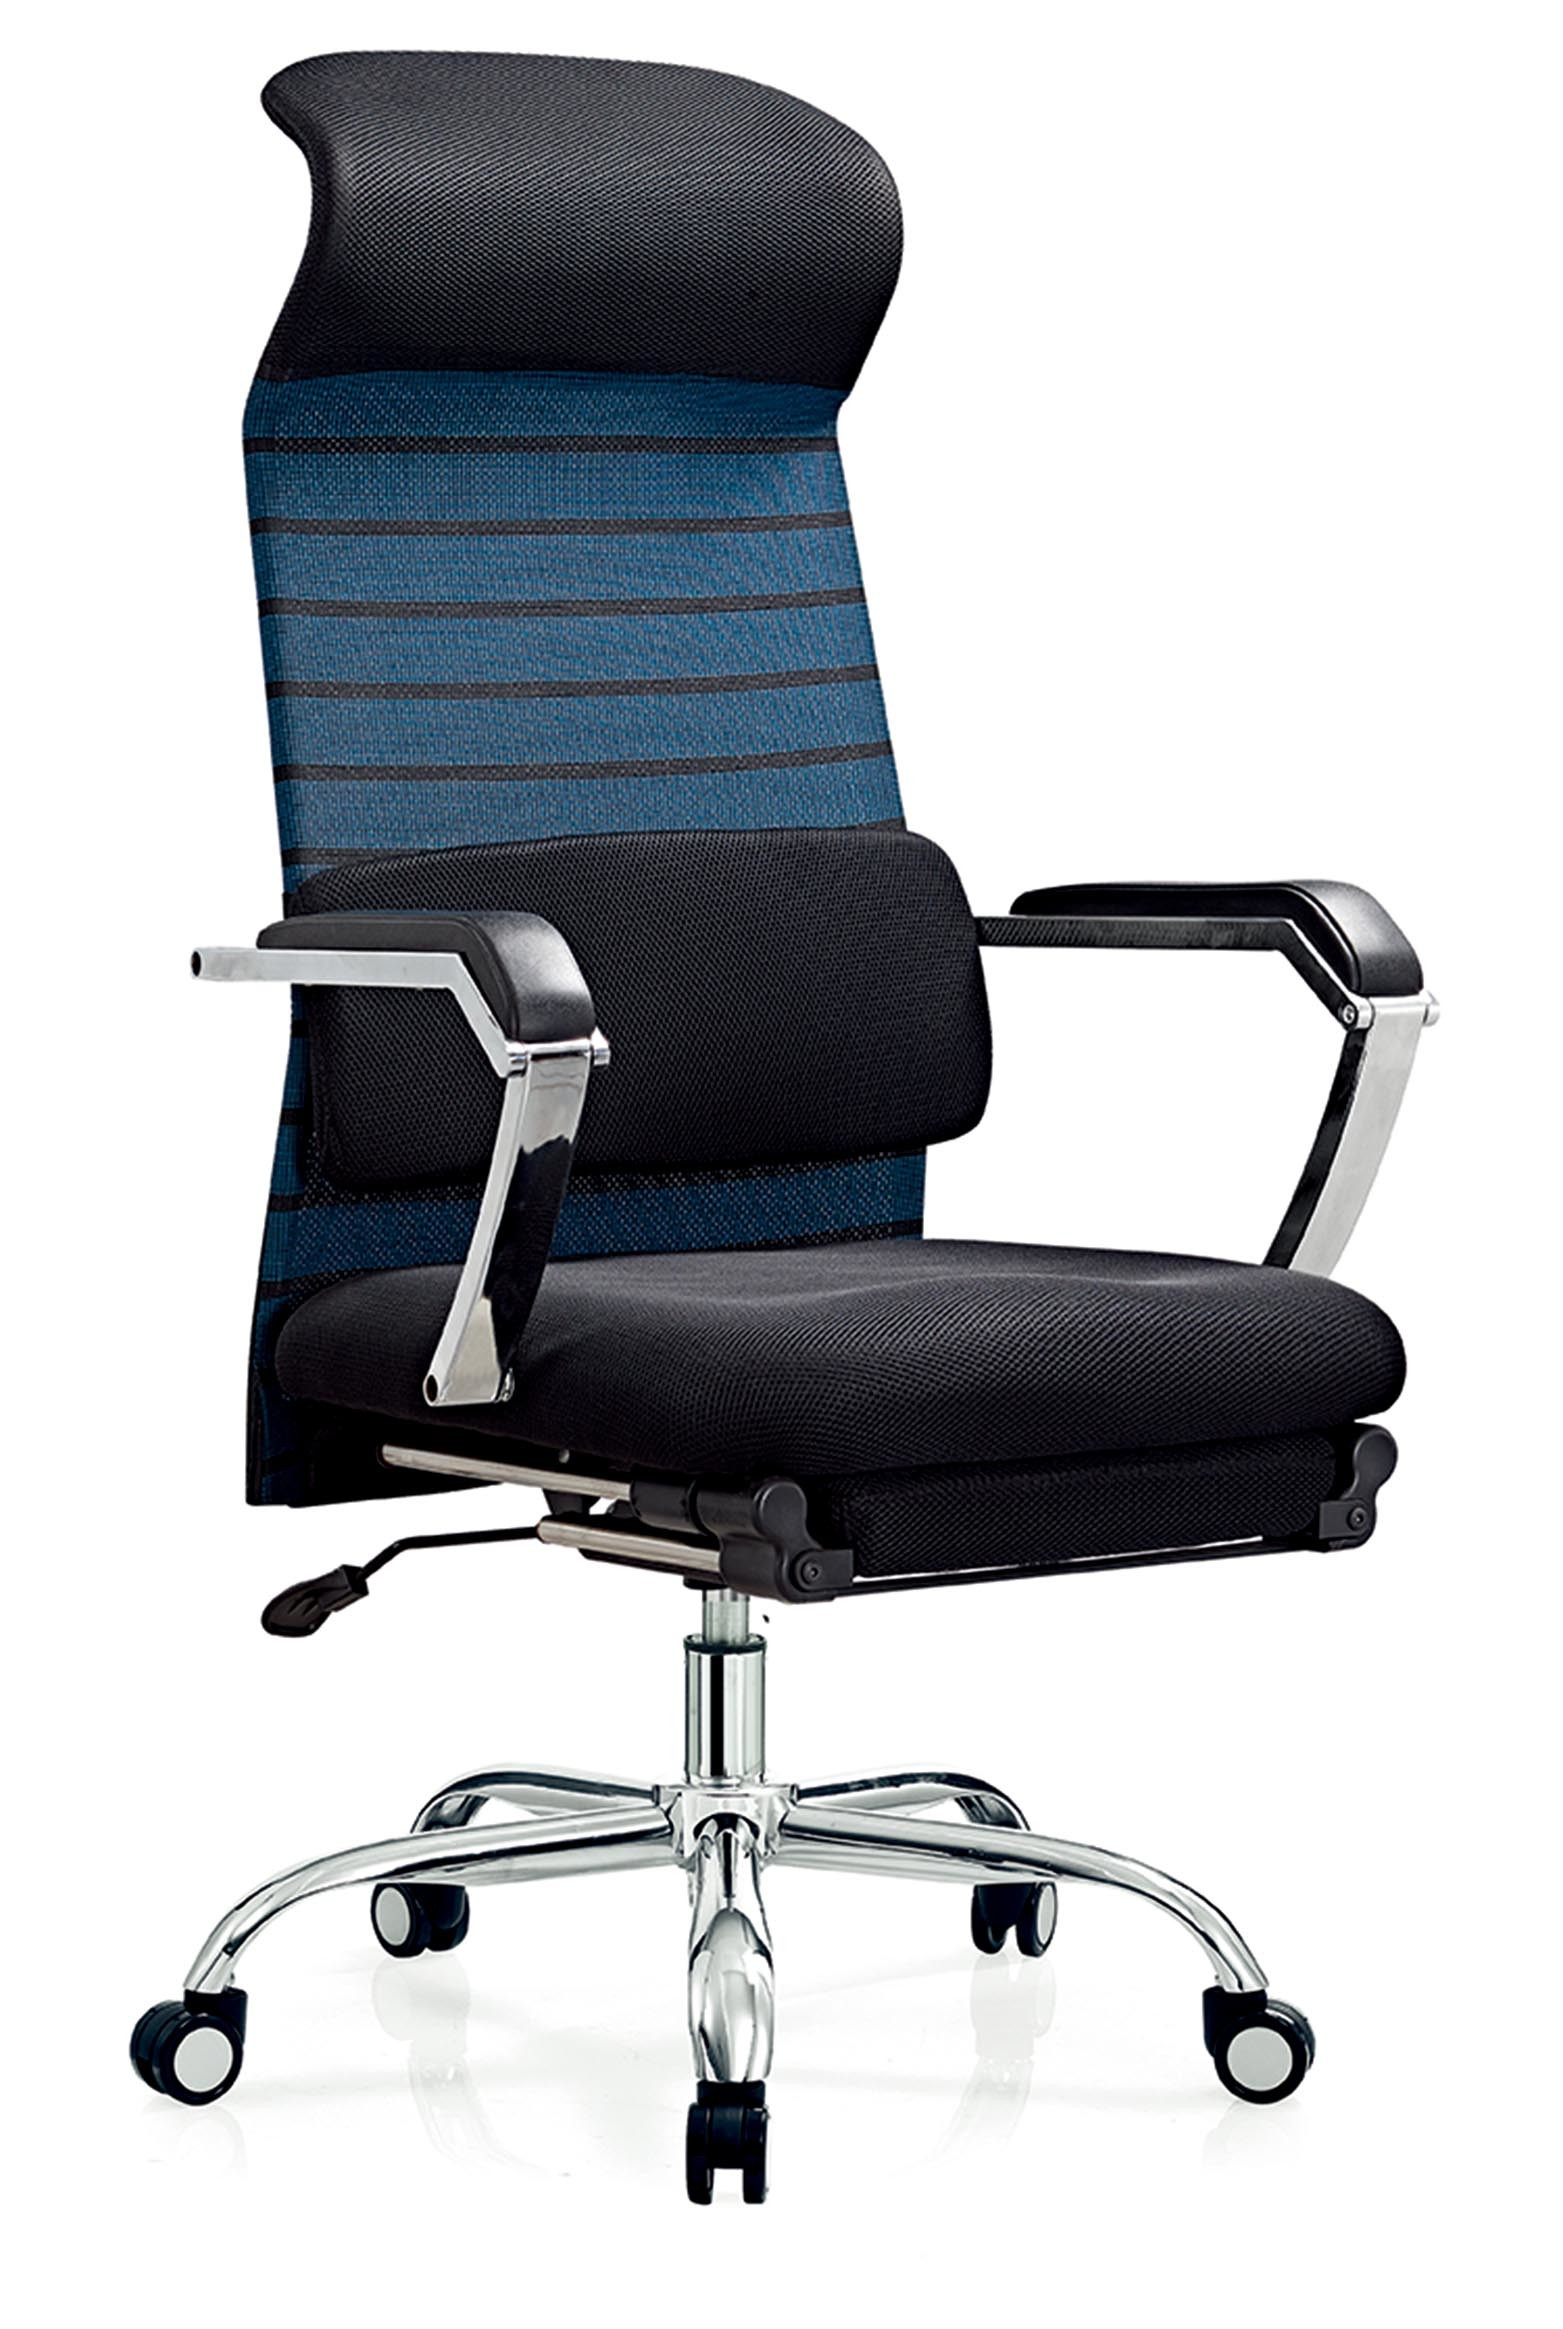 Modern Ergonomic Swivel Mesh Boss Executive Office Chair pictures & photos